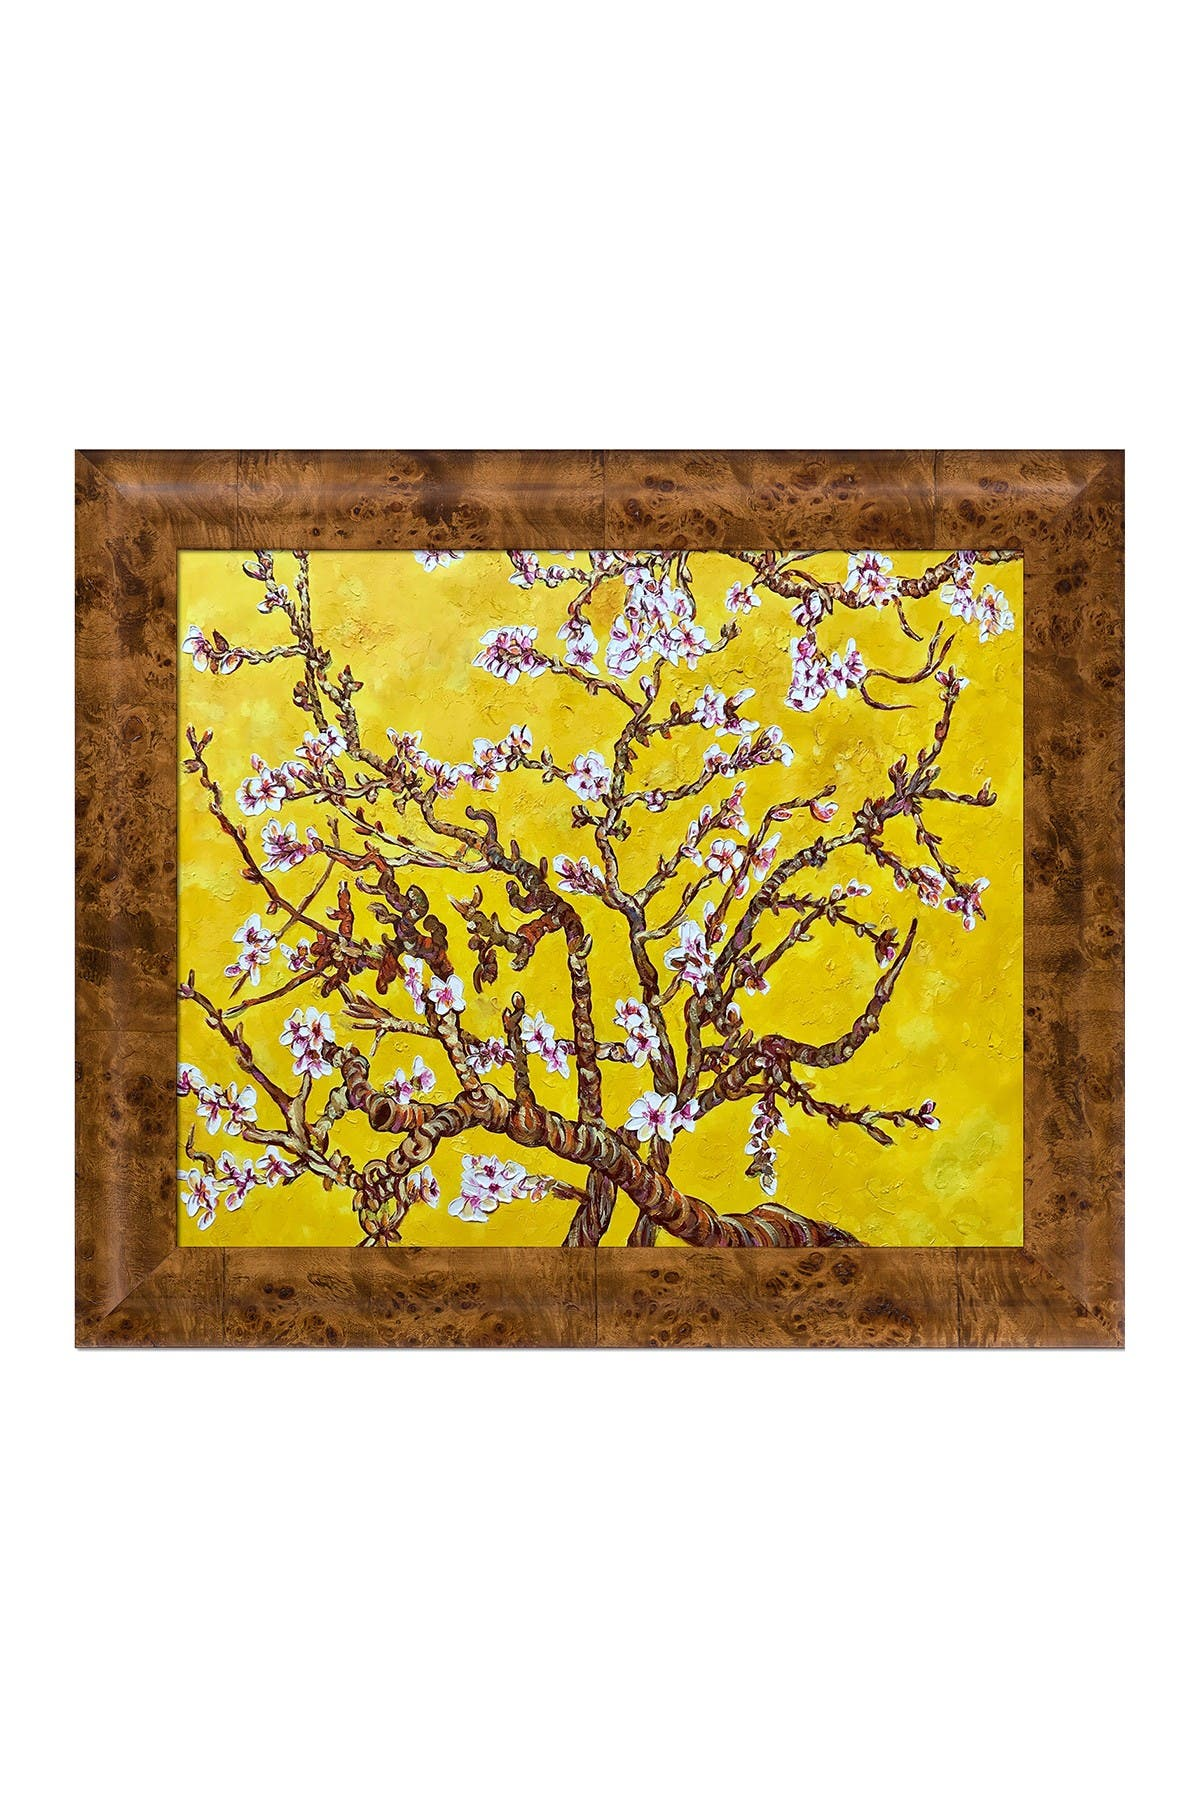 Image of Overstock Art Branches of an Almond Tree in Blossom, Citrine Yellow by La Pastiche Originals Framed Hand Painted Oil Reproduction